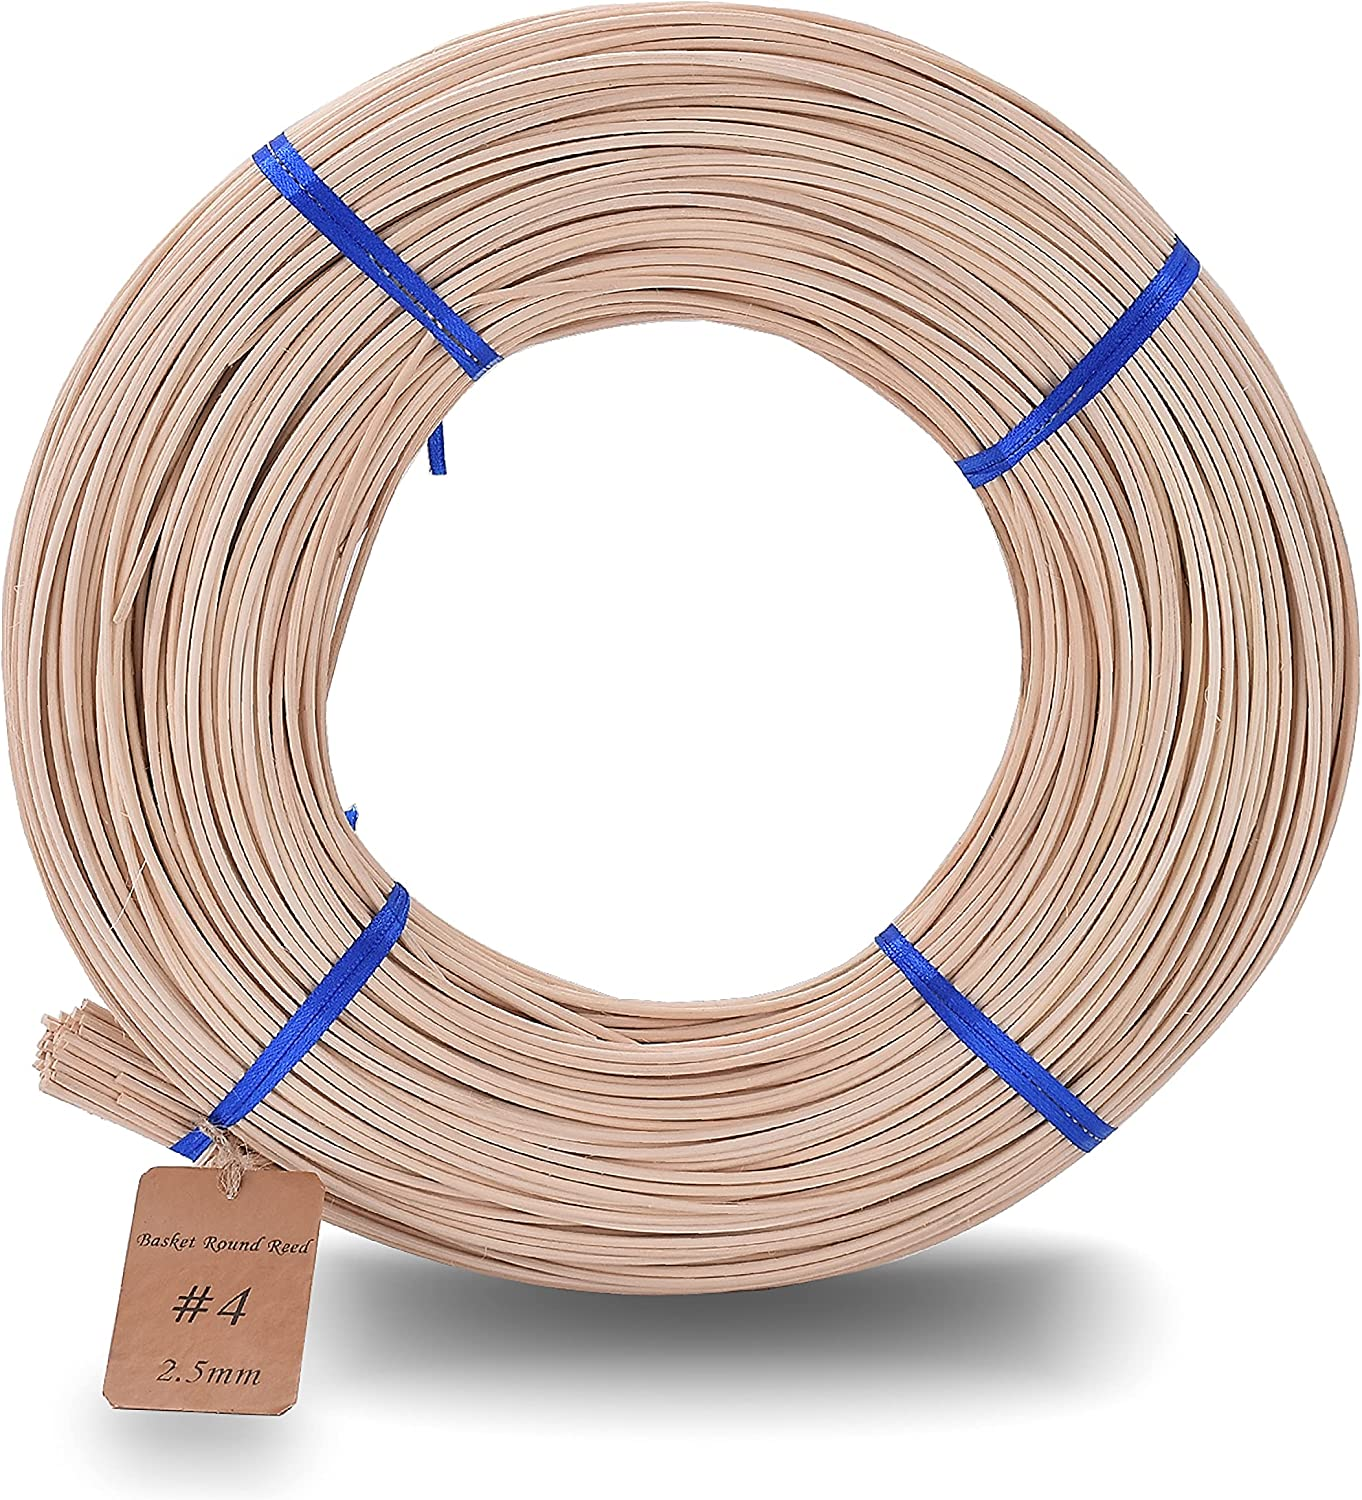 Basket Round Selling rankings Reed #4 2.5mm 1-Pound Cane Weaving for Bargain Coil